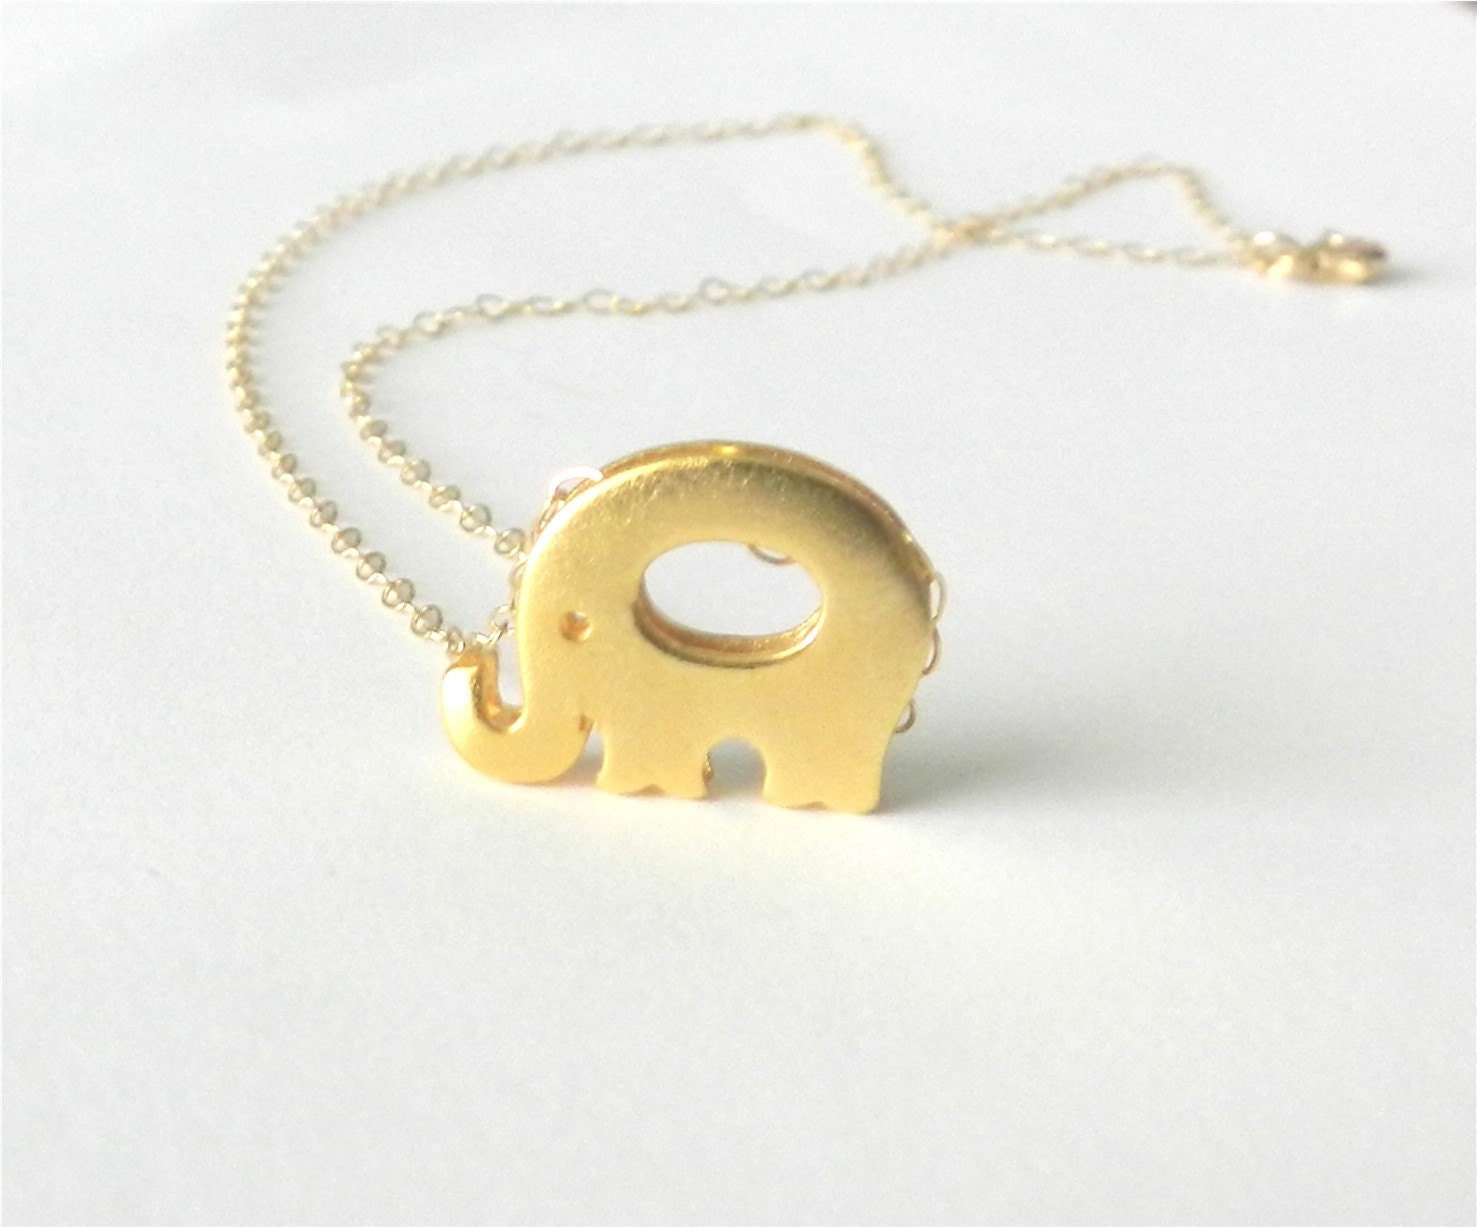 Tiny elephant necklace in gold, lucky little elephant, delicate modern jewelry